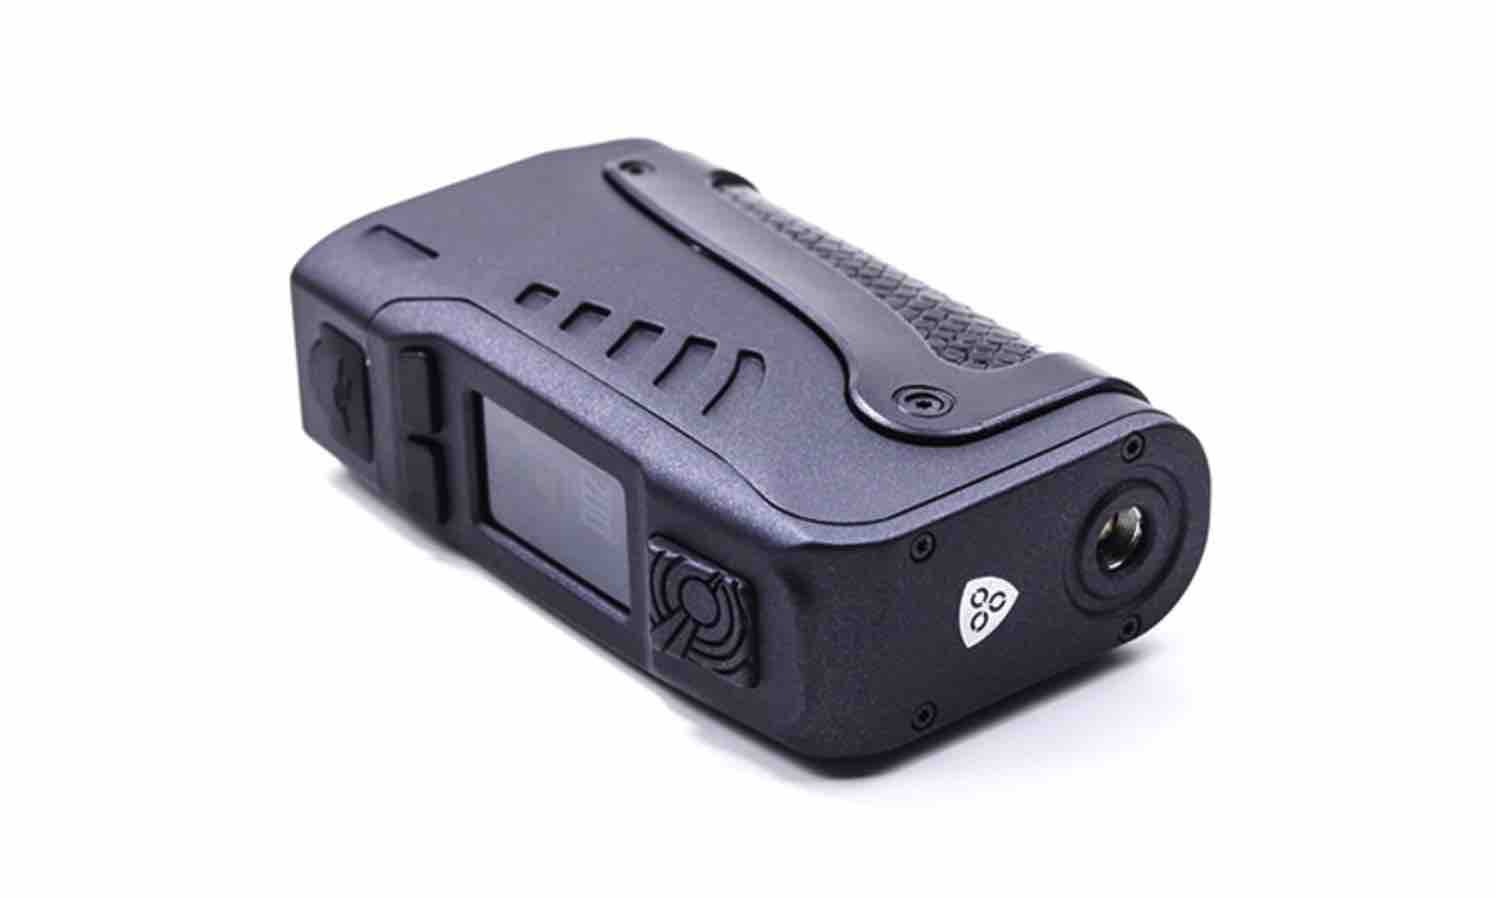 reuleaux-tinker-2-510-image